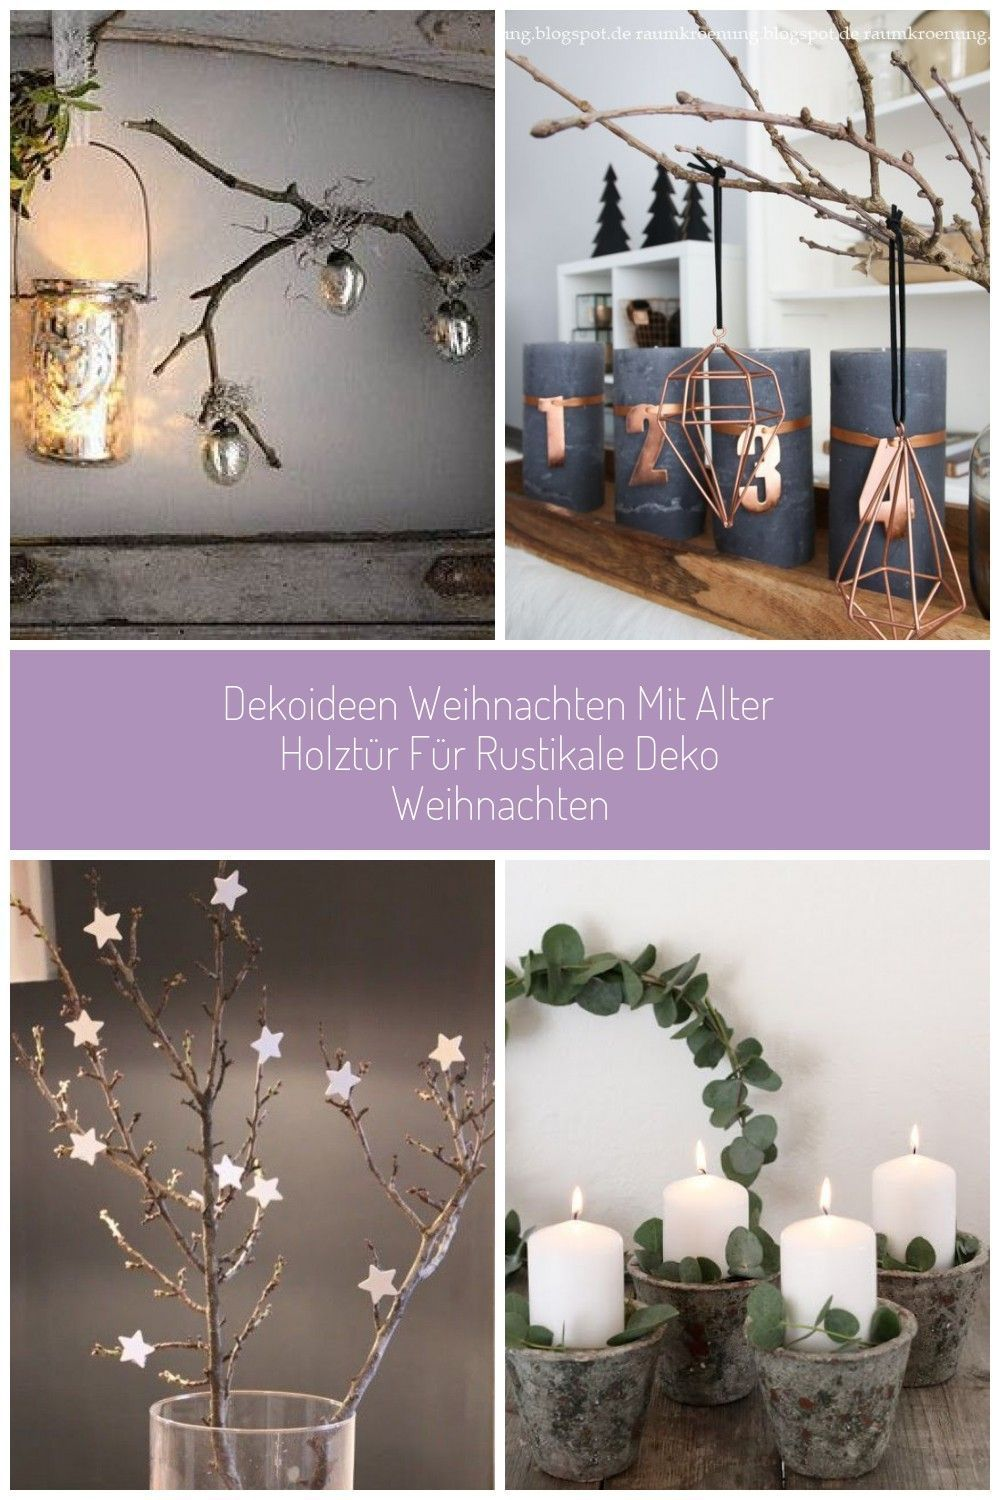 Christmas decorations with an old wooden door for rustic Christmas …